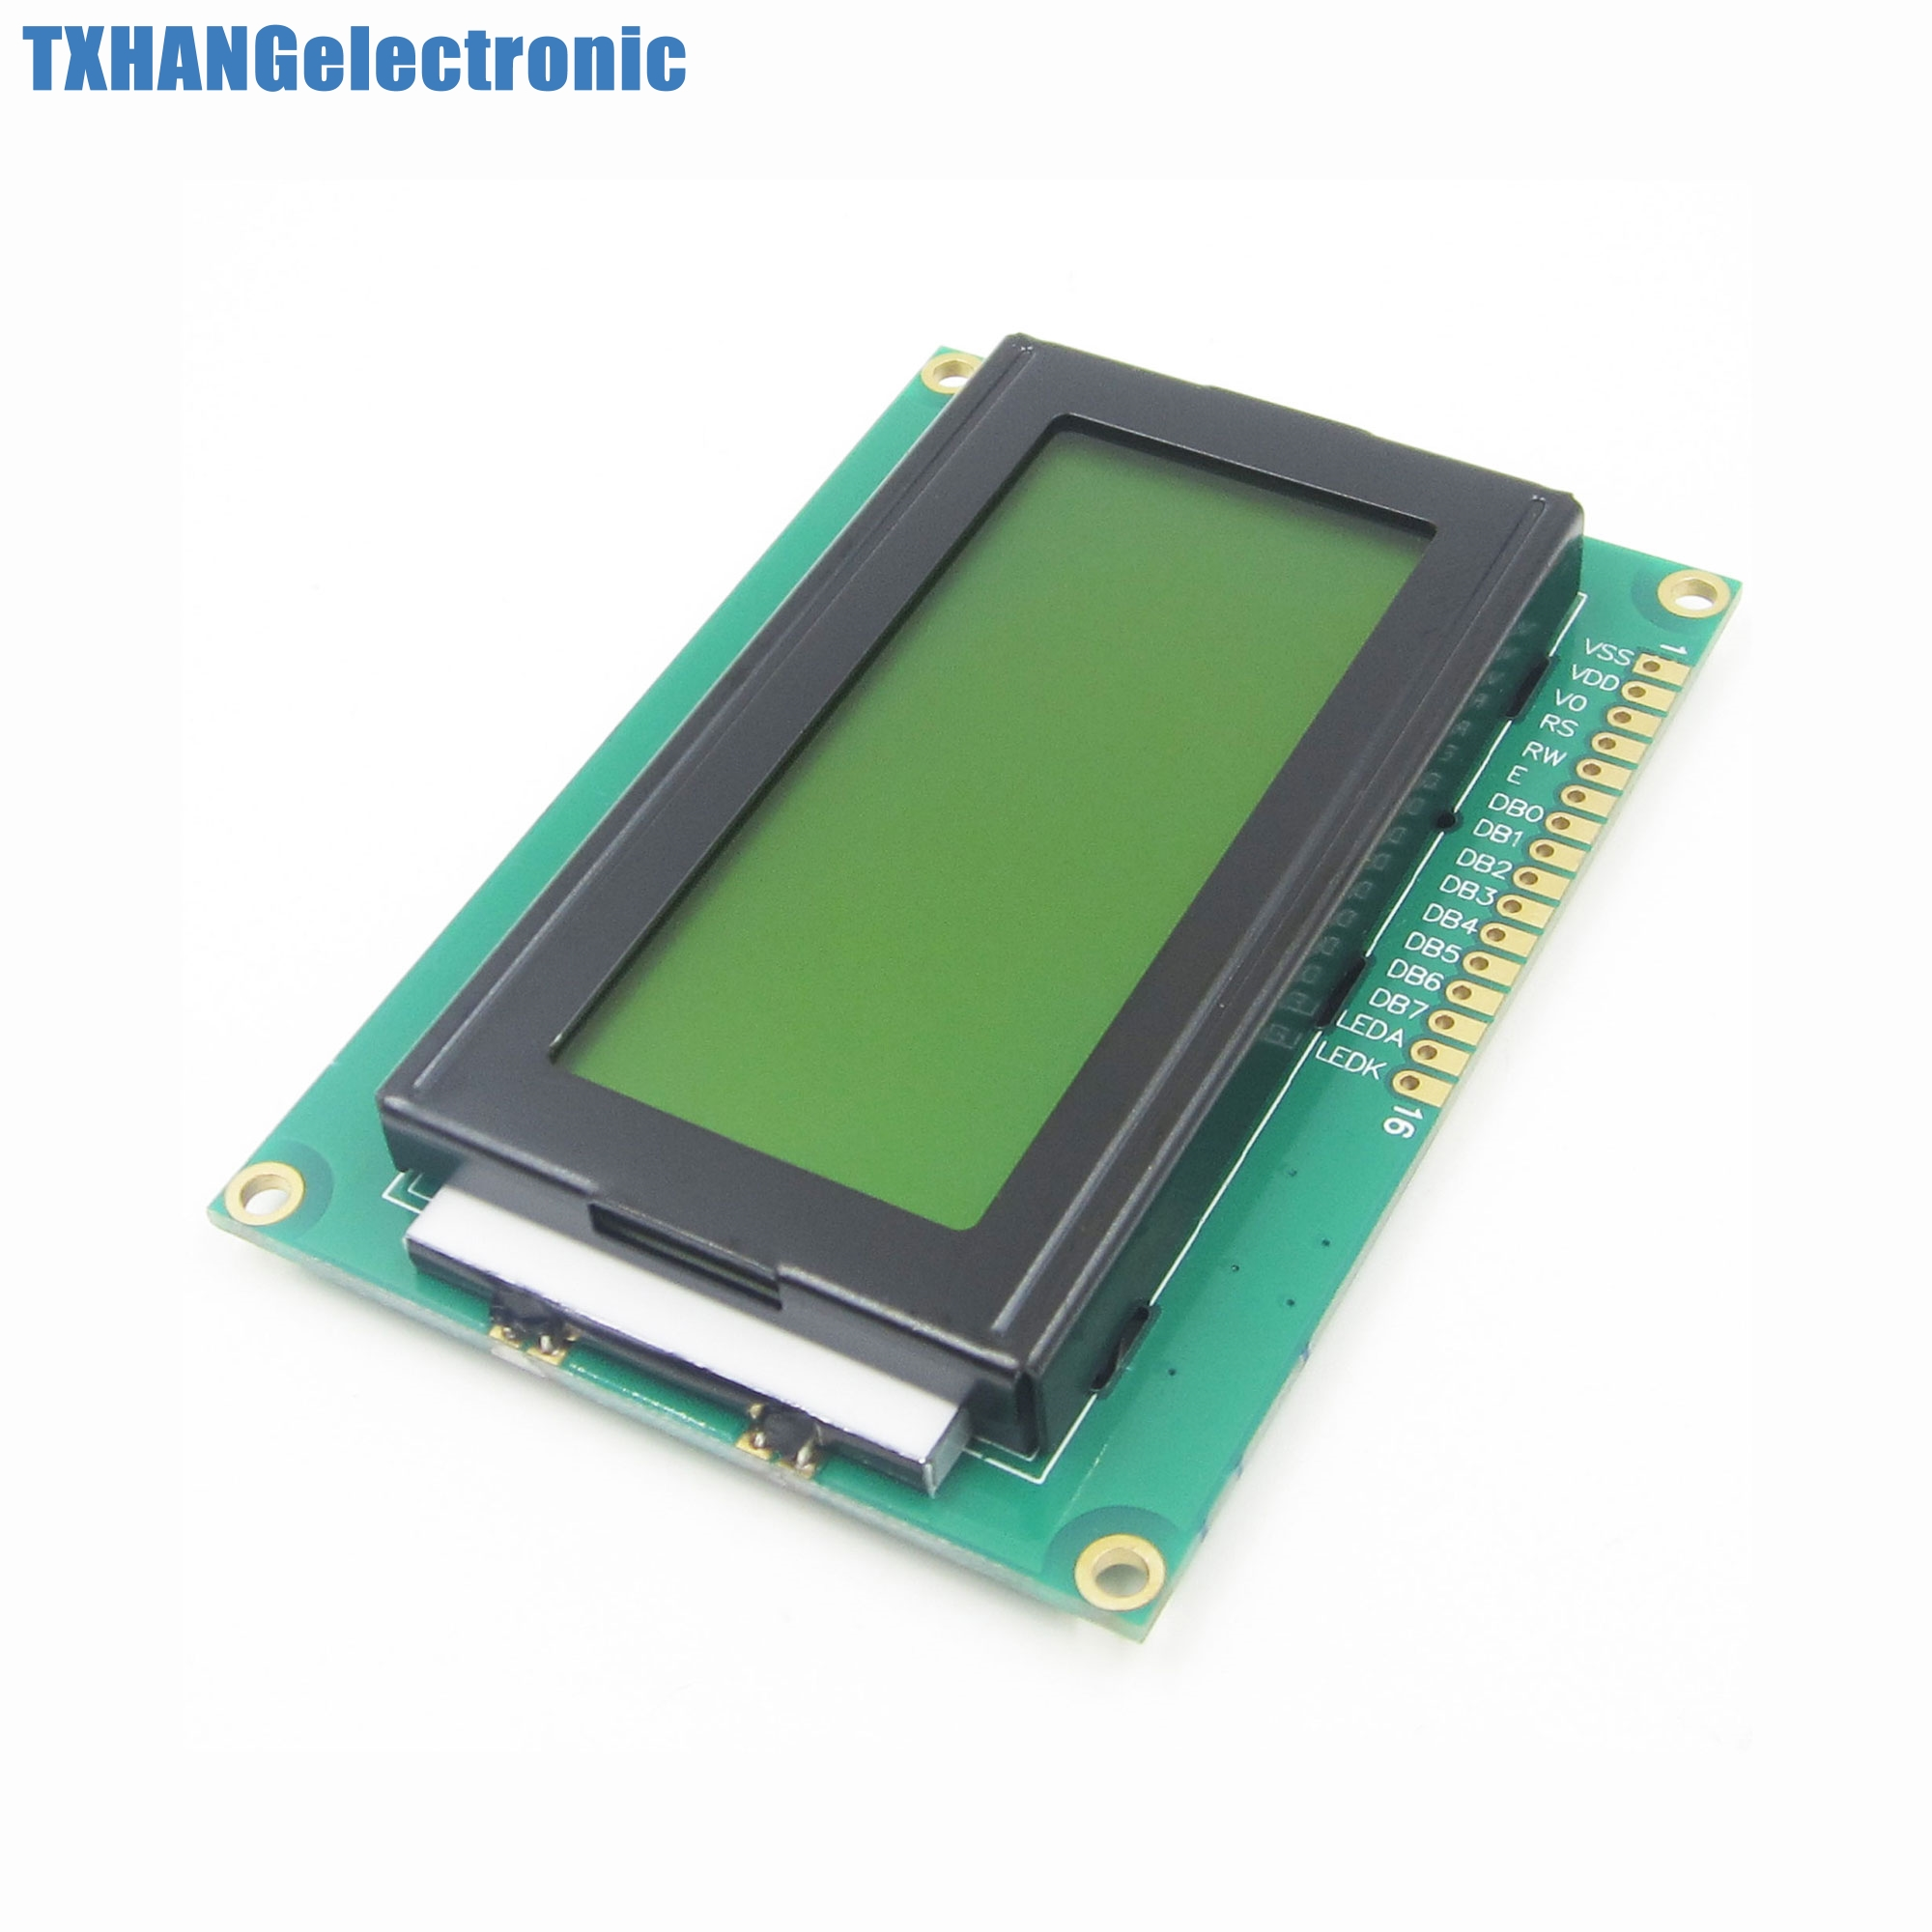 1 LCD1604 16x4 Character LCD Display Module LCM Yellow Black Light 5V Electronic Component Accessories Diy